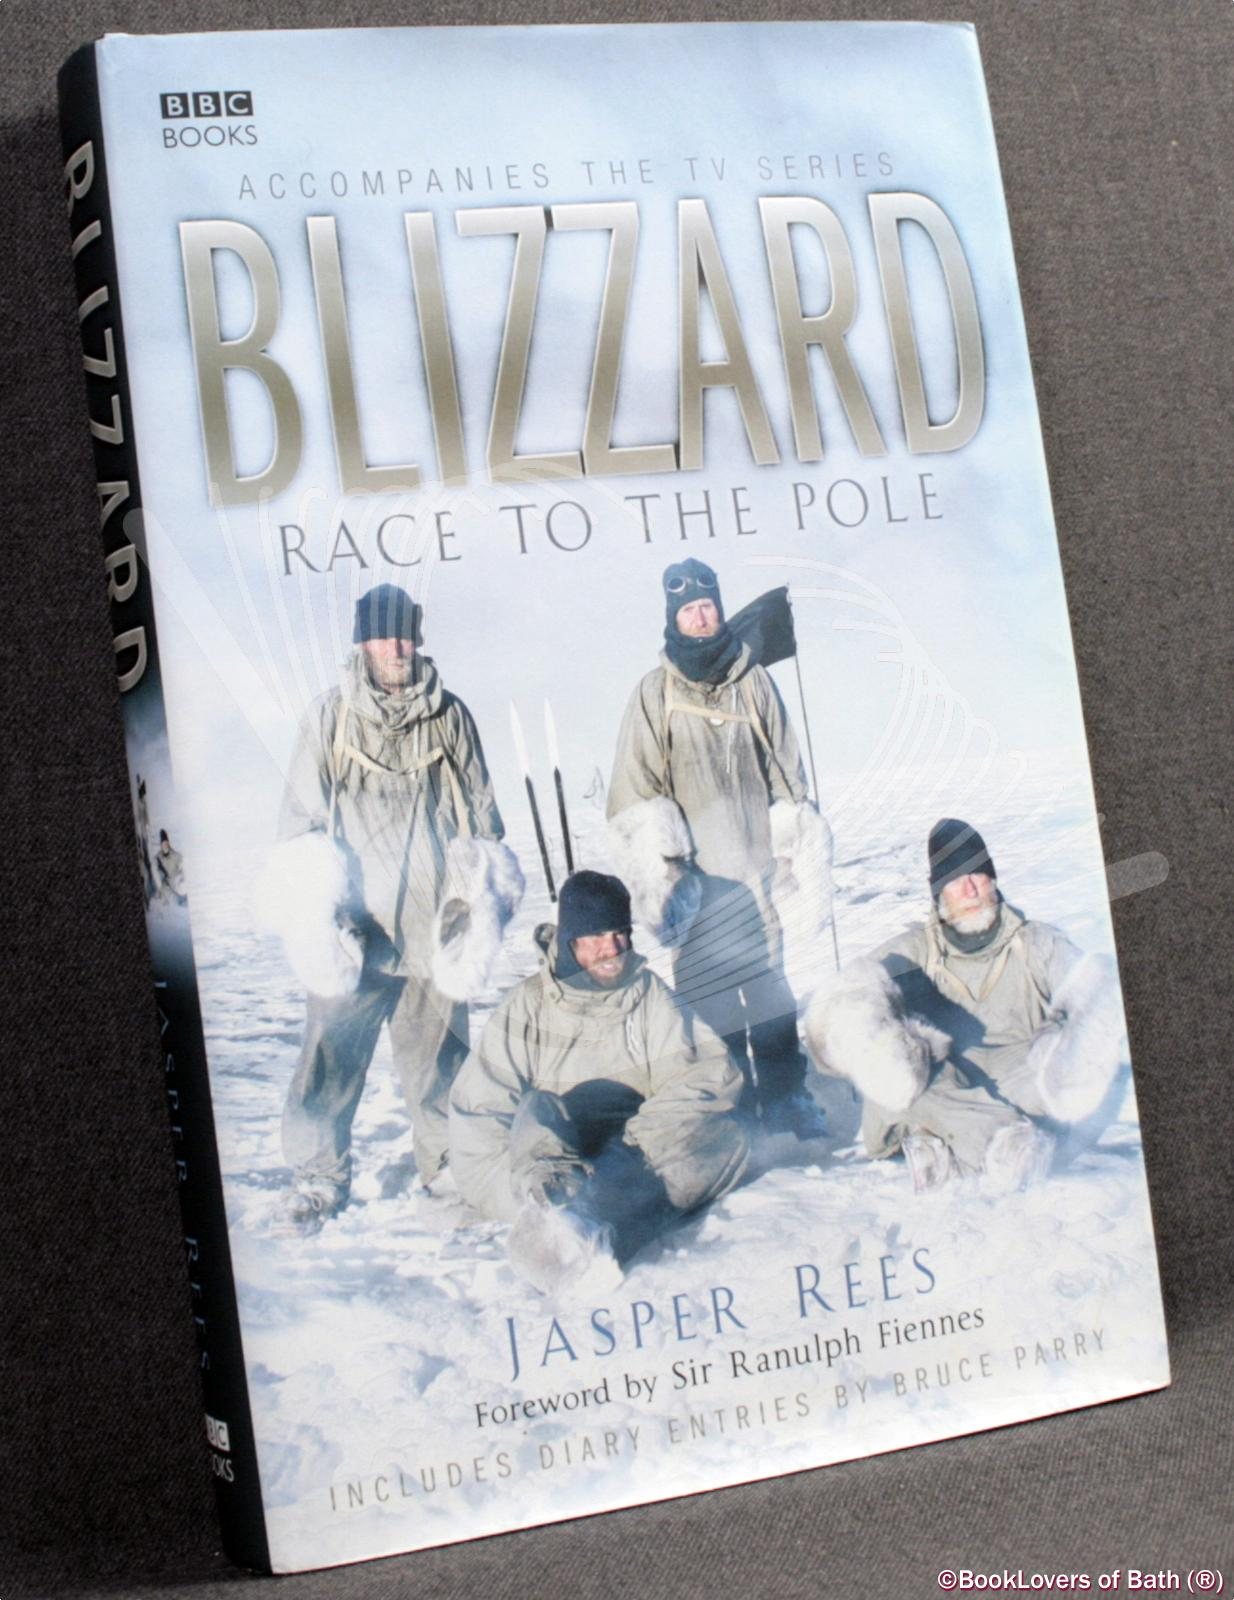 Blizzard: Race to the Pole - Jasper Rees